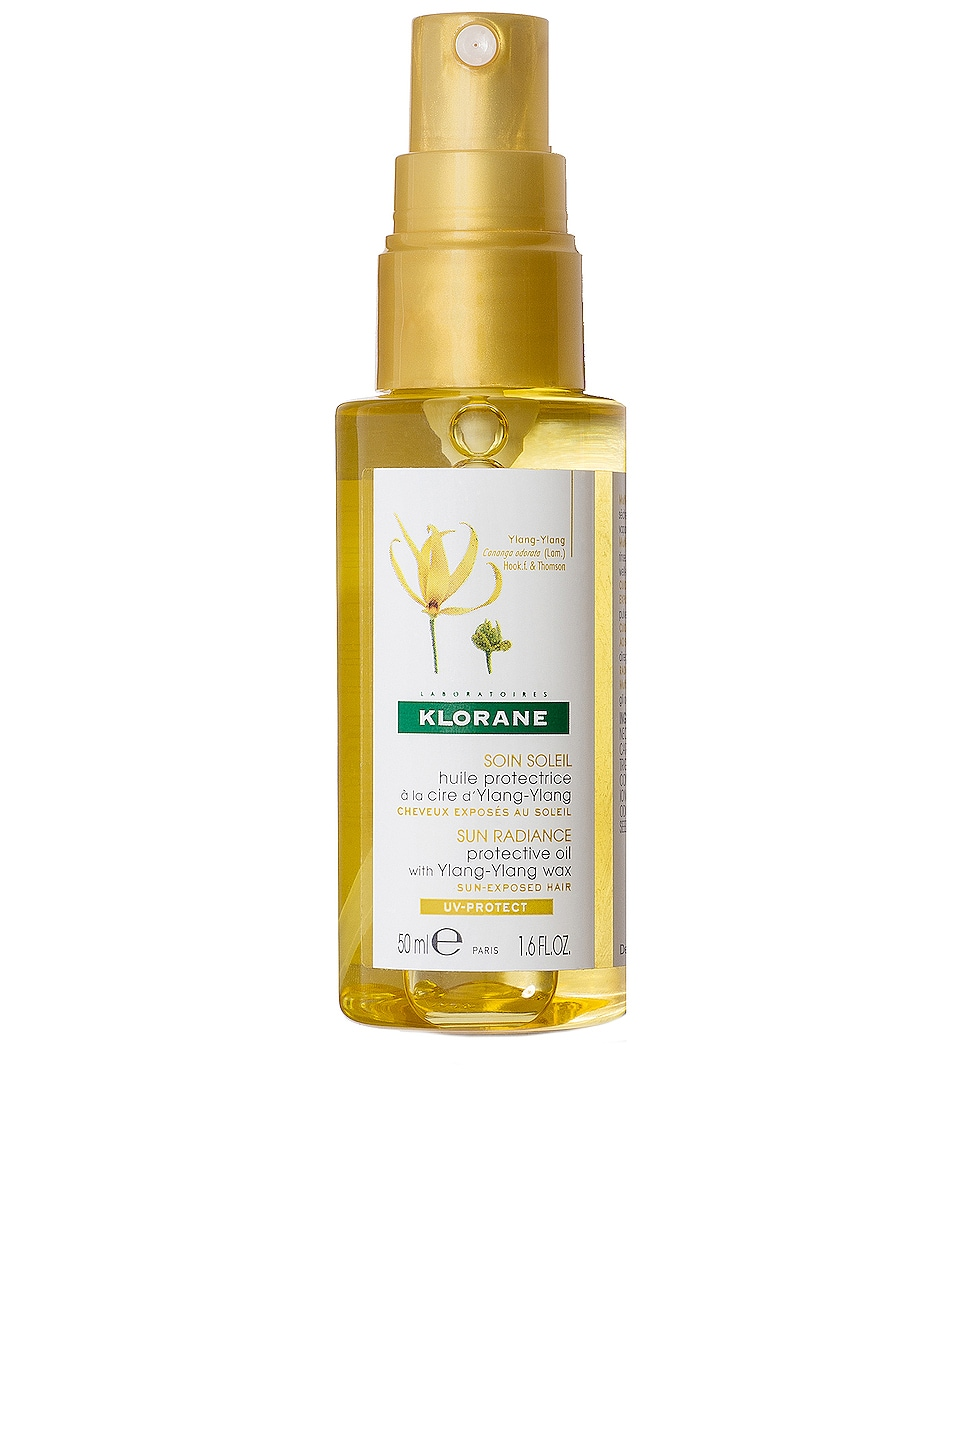 Klorane Travel Protective Oil with Ylang-Ylang